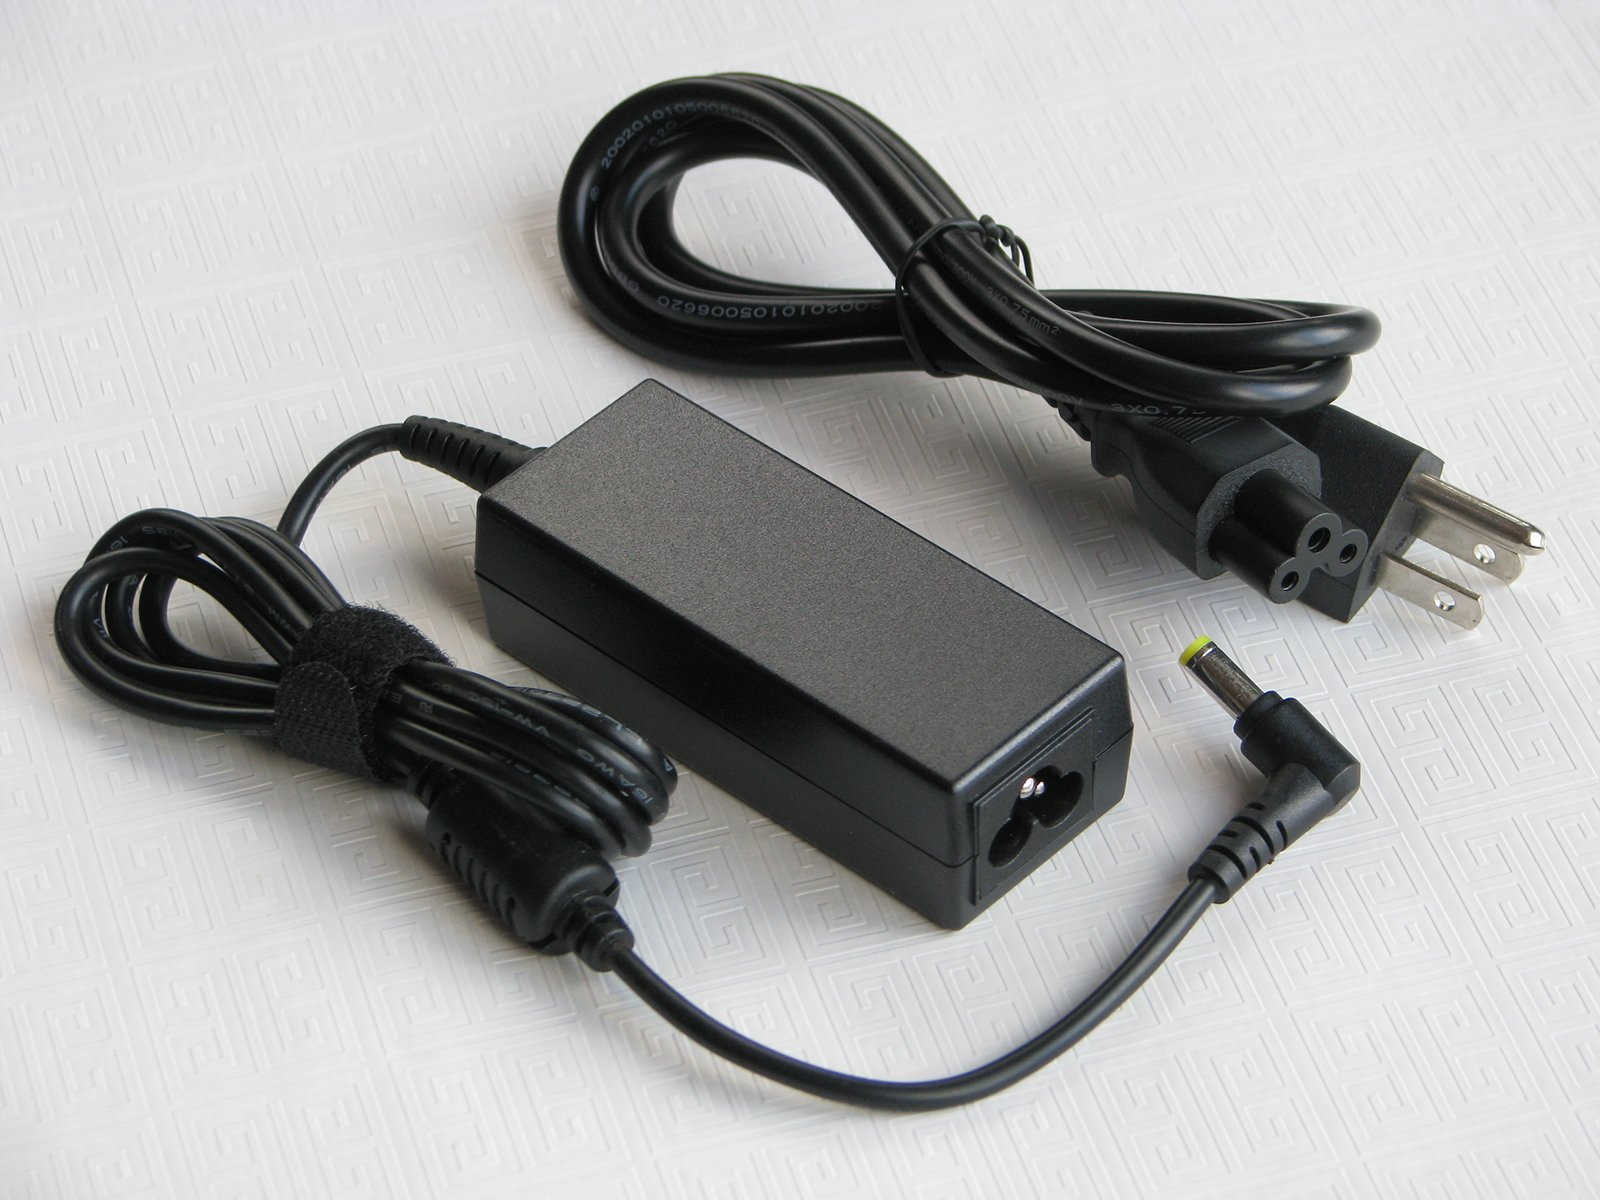 Brand New AC Adapter Battery Charger ( 45W ) Power Supply Cord for Toshiba Portege (Portégé) Z930-08E Complete Computing Laptop/Notebook PC Computer [ Merchant & Seller: Micro_Power_Source ( MPS )]